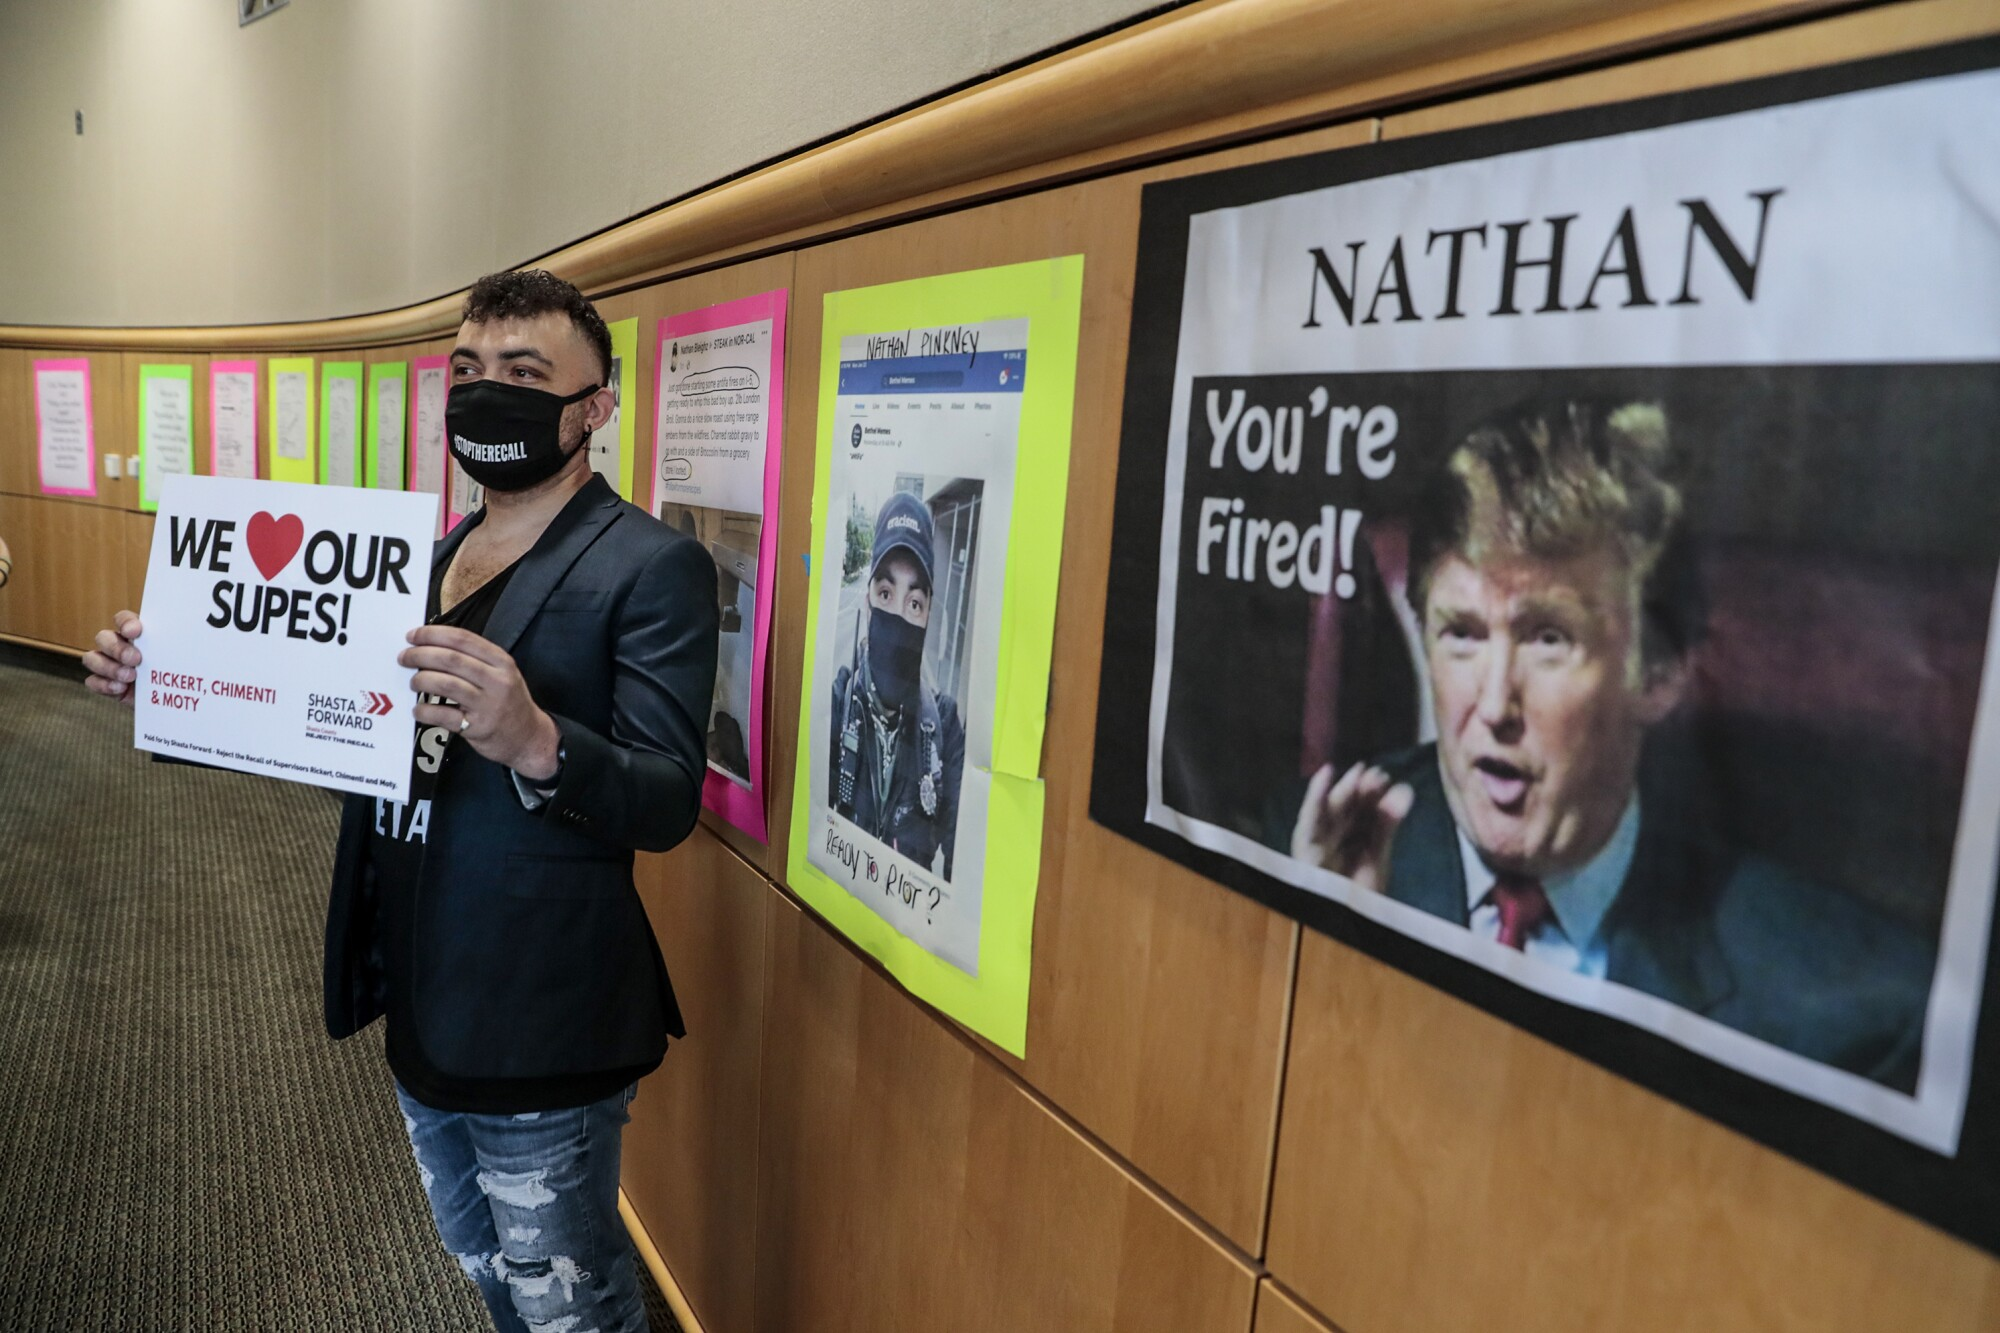 Nathan Pinkney  in front of a wall filled with posters showing his  social media posts and court records